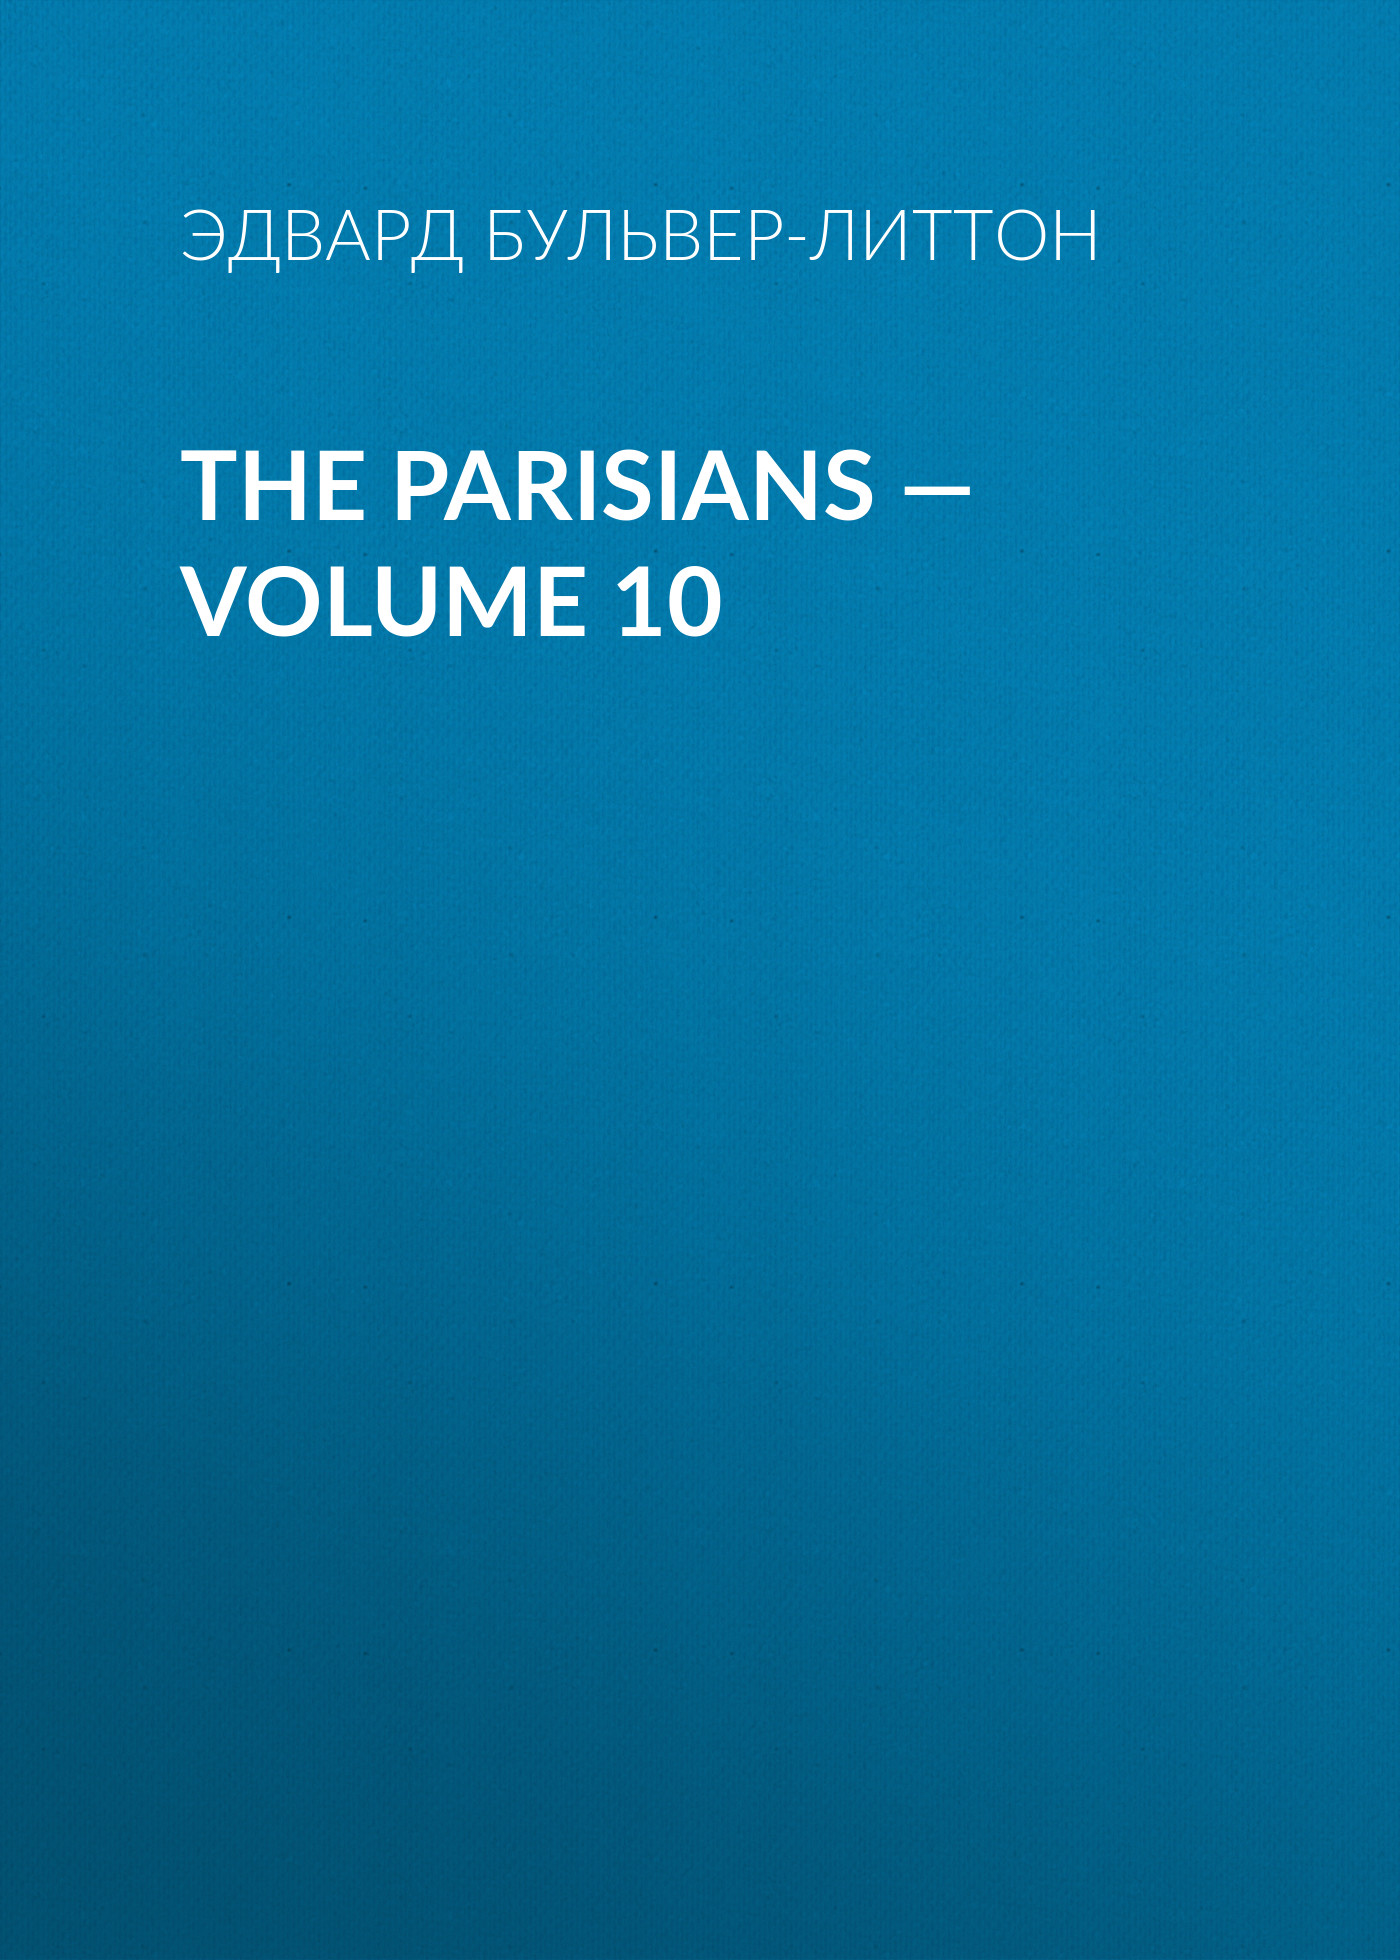 Эдвард Бульвер-Литтон The Parisians — Volume 10